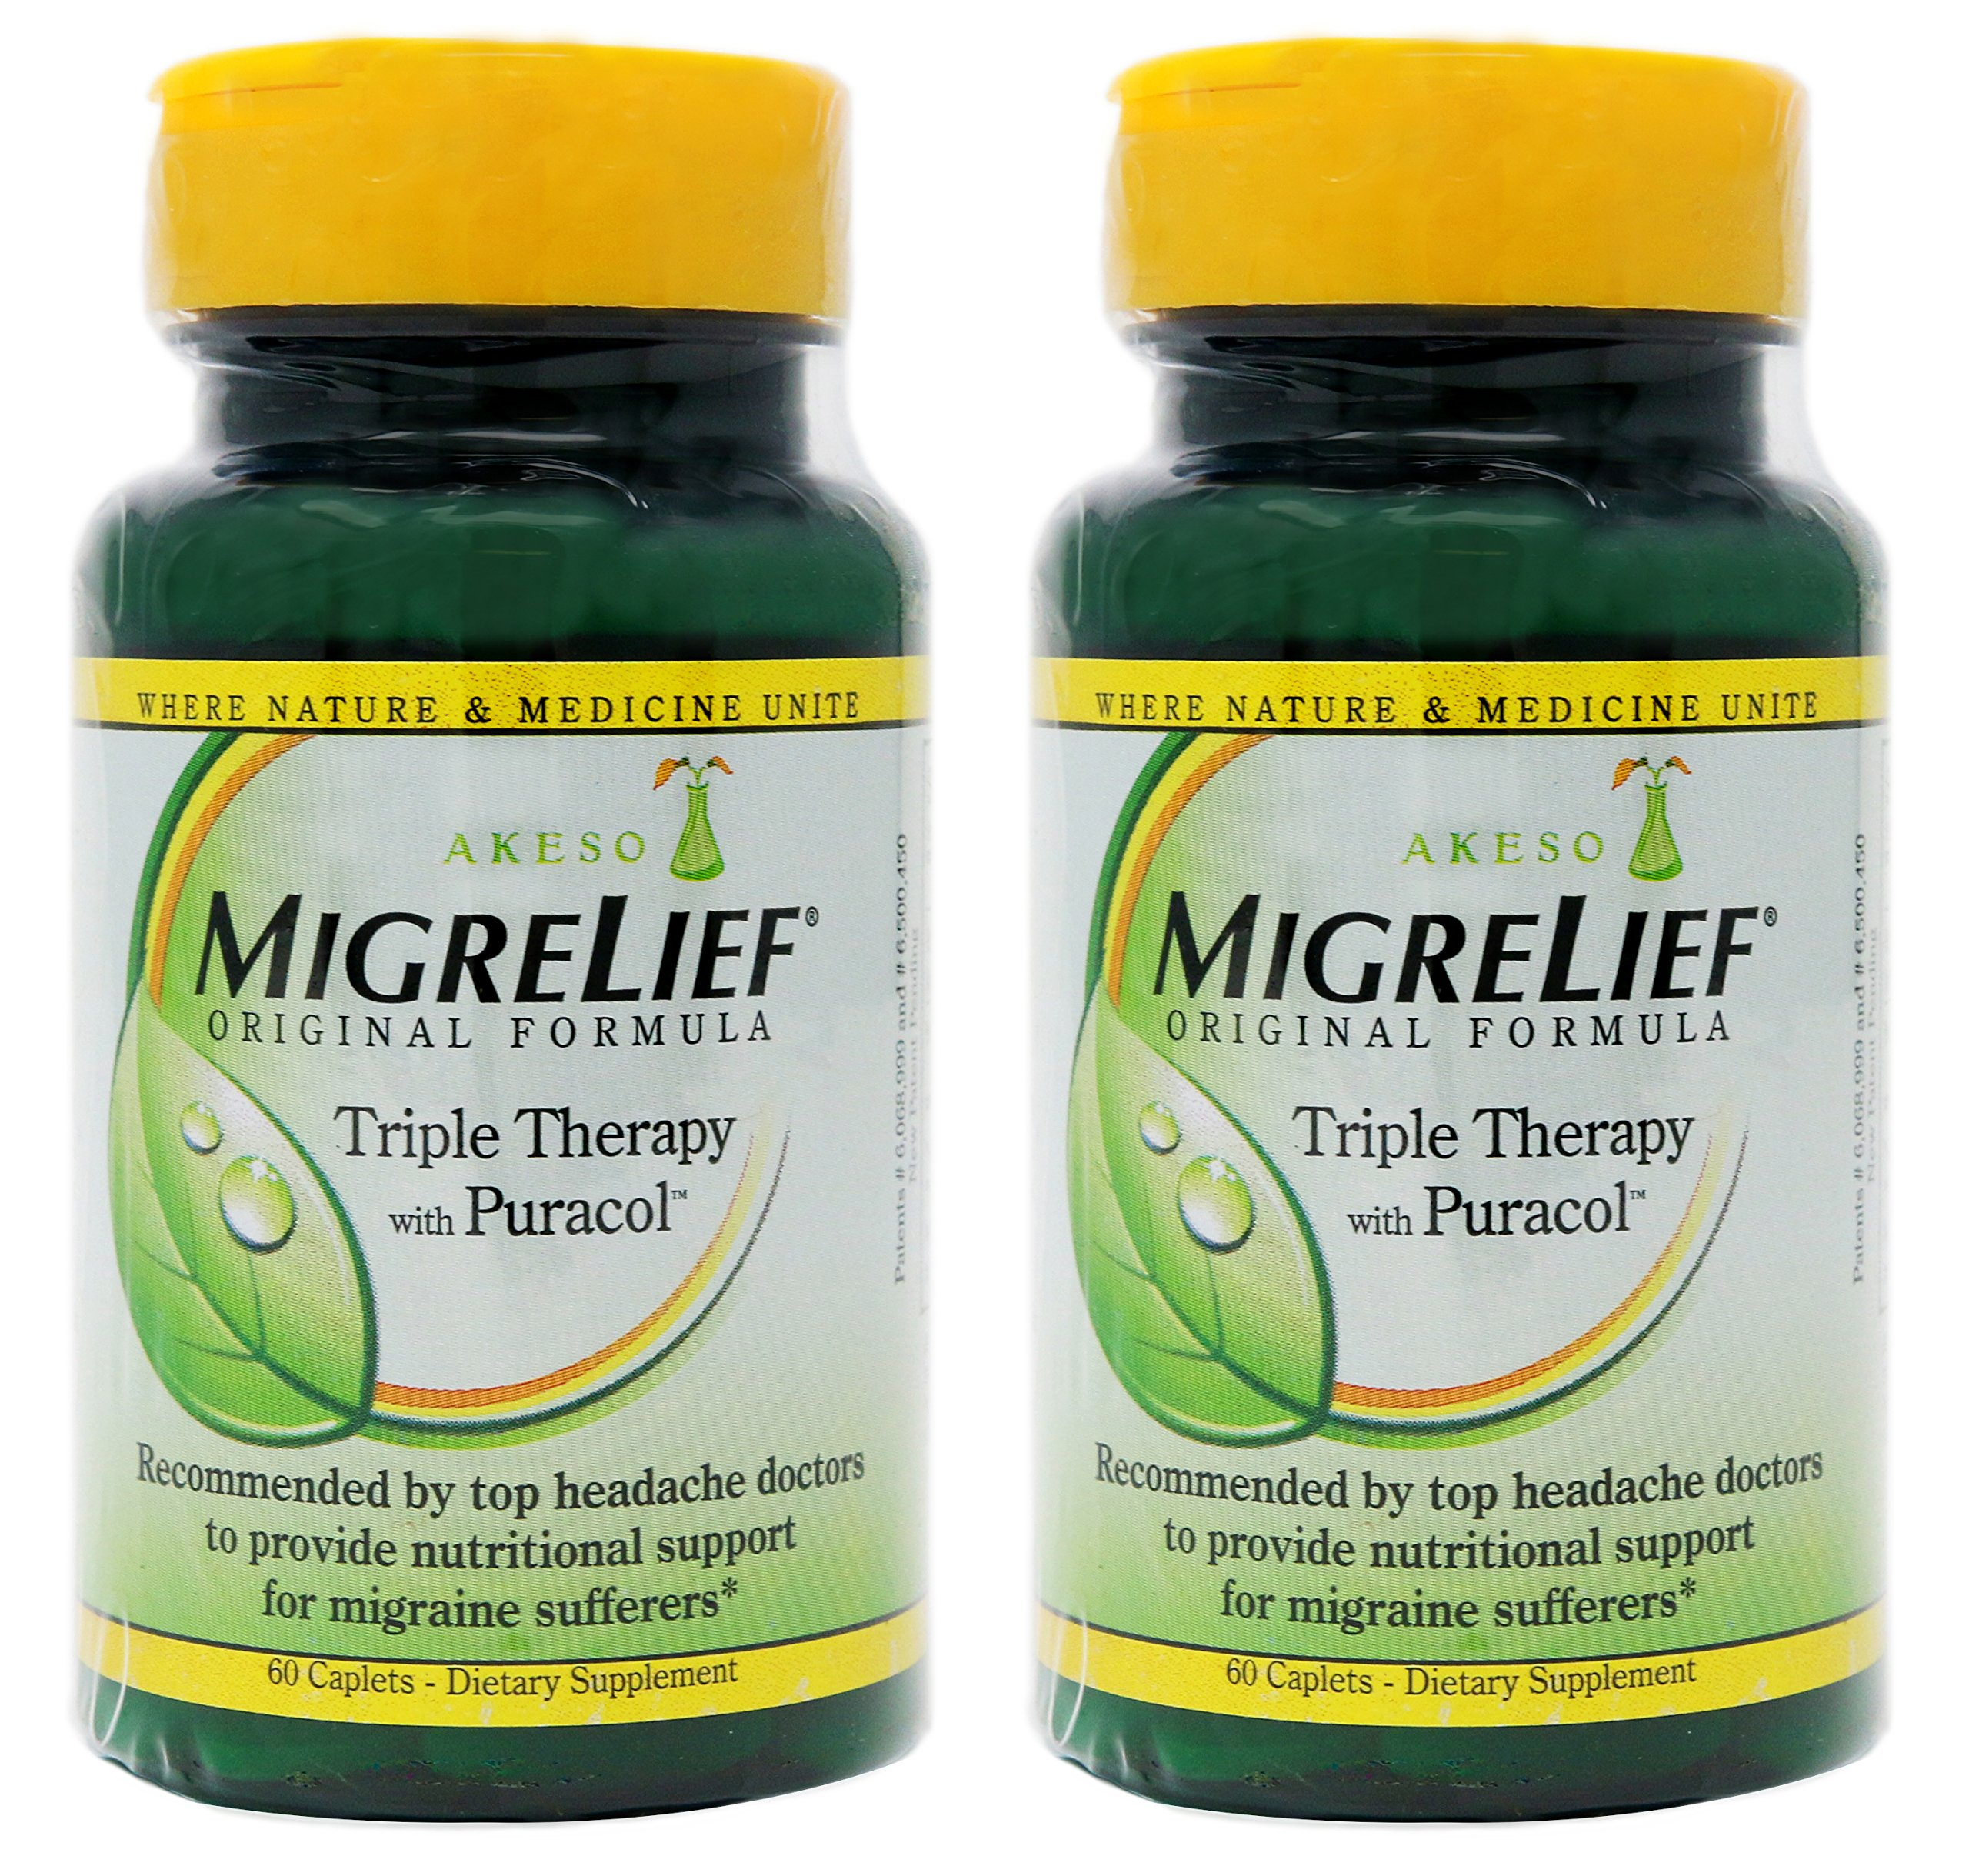 MigreLief Original Formula Triple Therapy with Puracol Caplets 60 Caplets (Pack of 2) by MigreLief